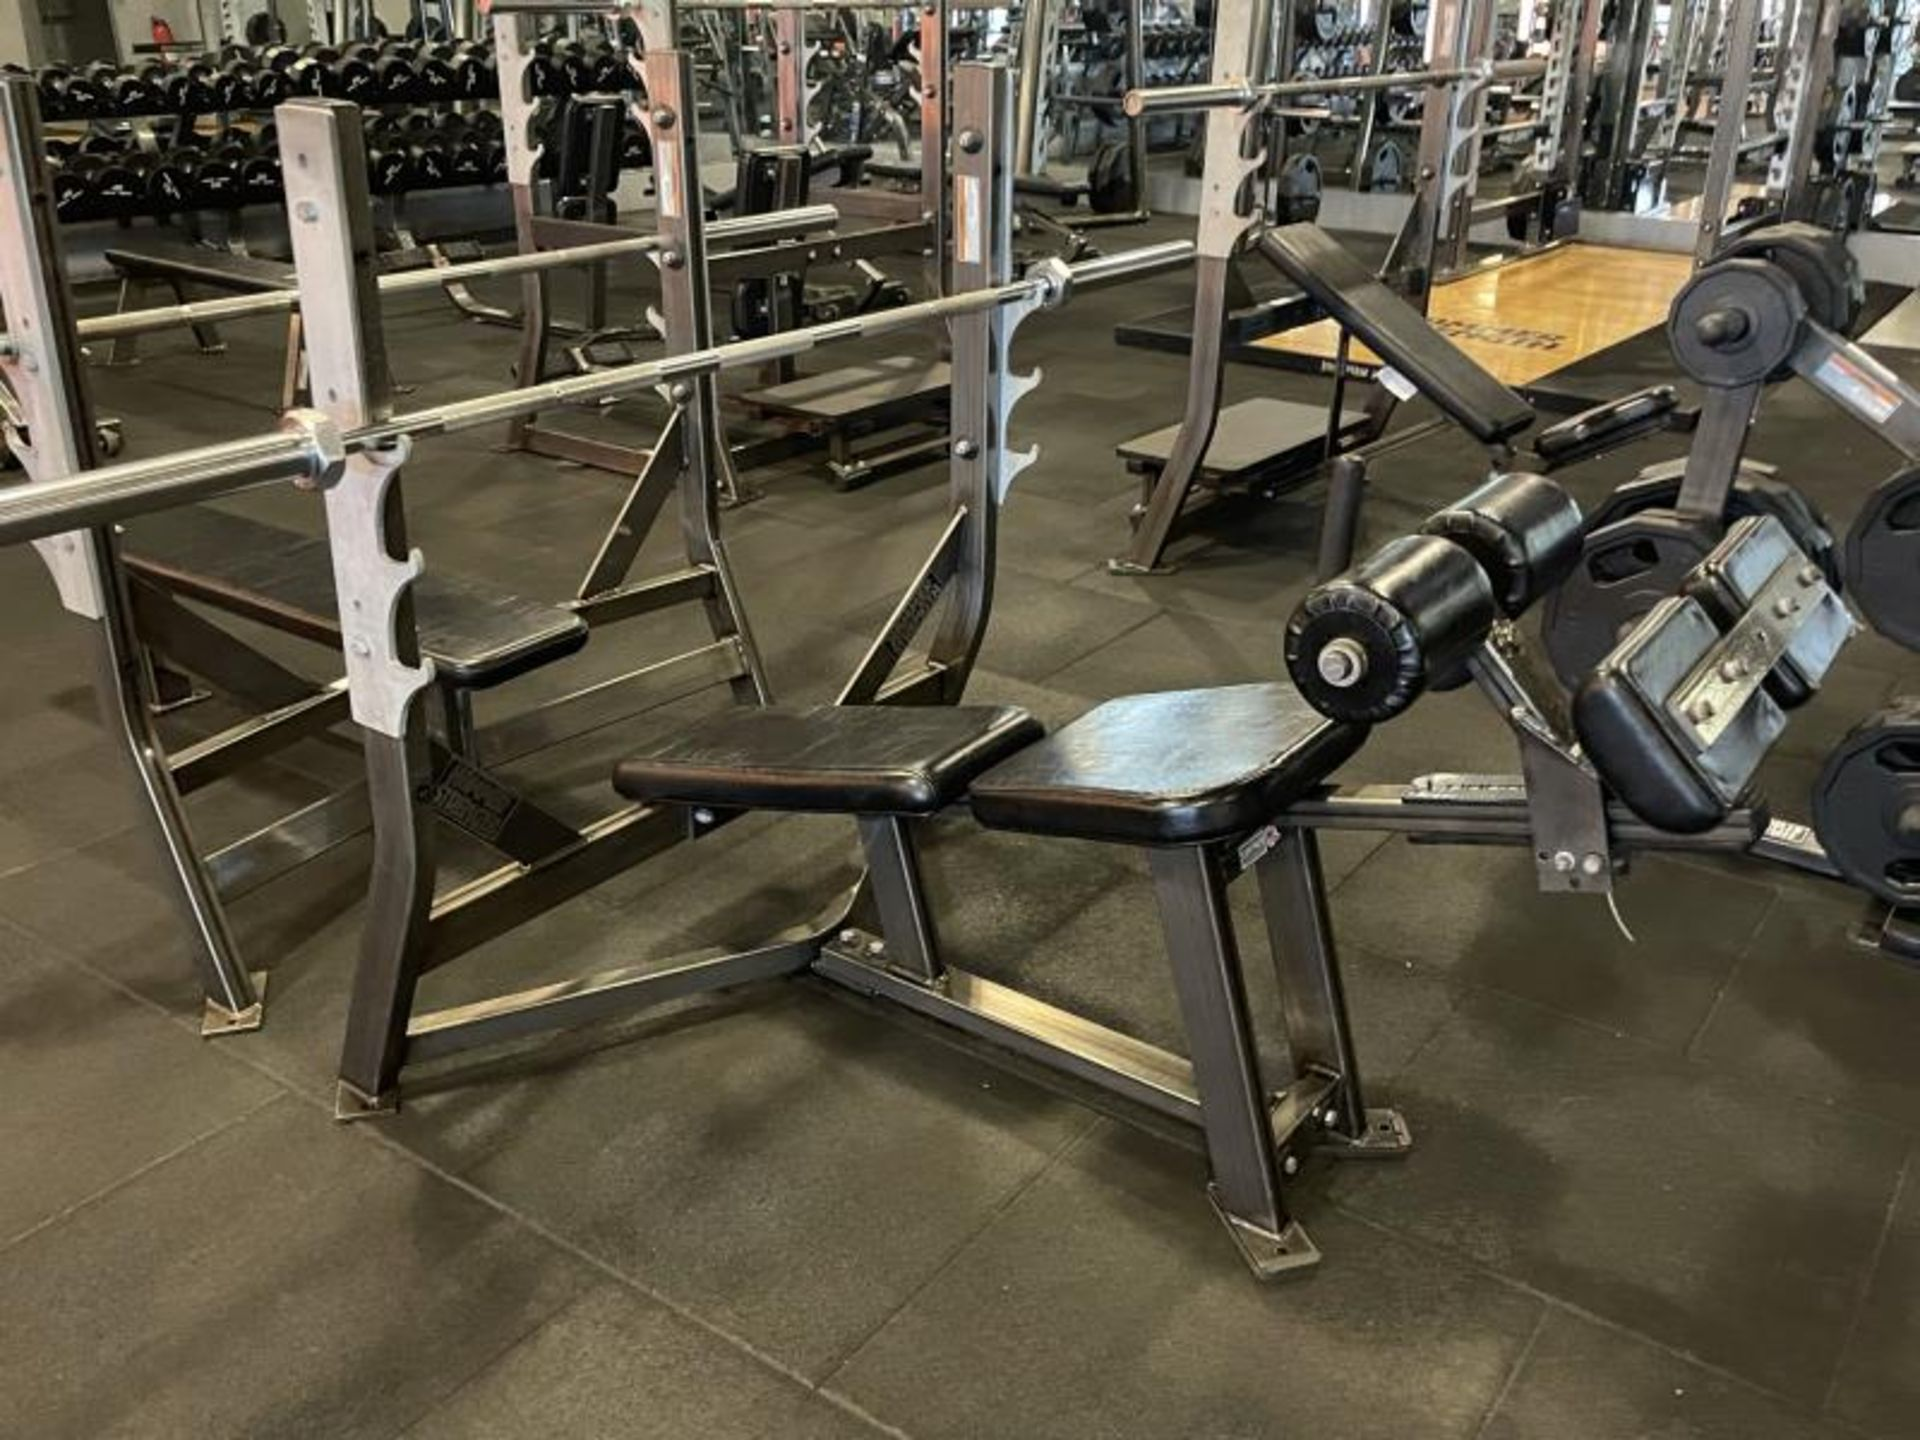 Hammer Strength Olympic Decline Bench with Bar ODB-A03